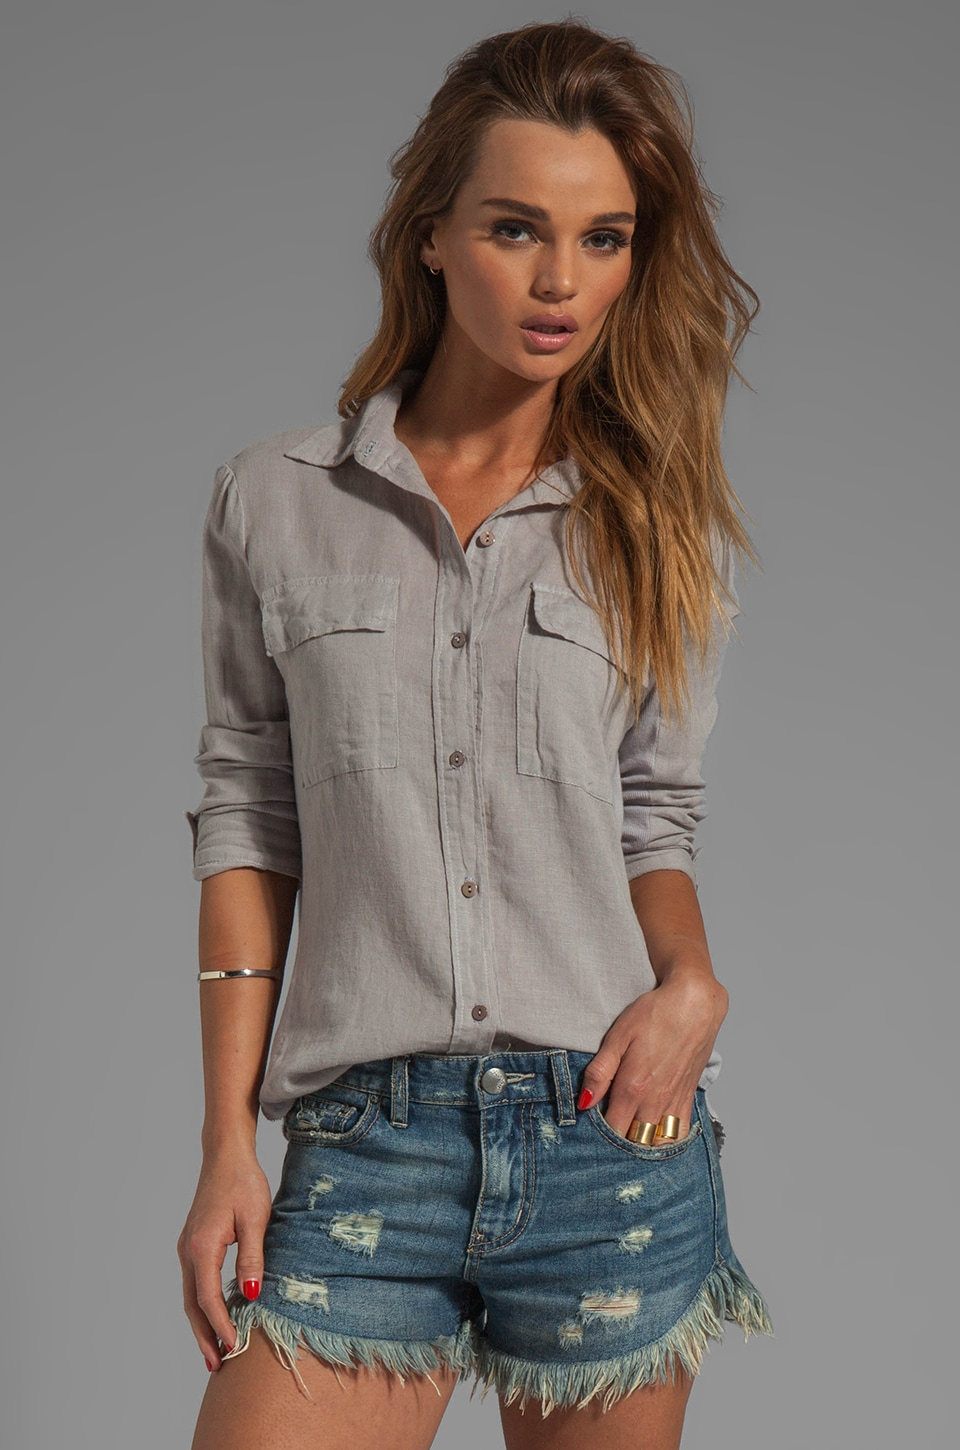 Enza Costa Izar Linen Fitted Shirt in Ashen